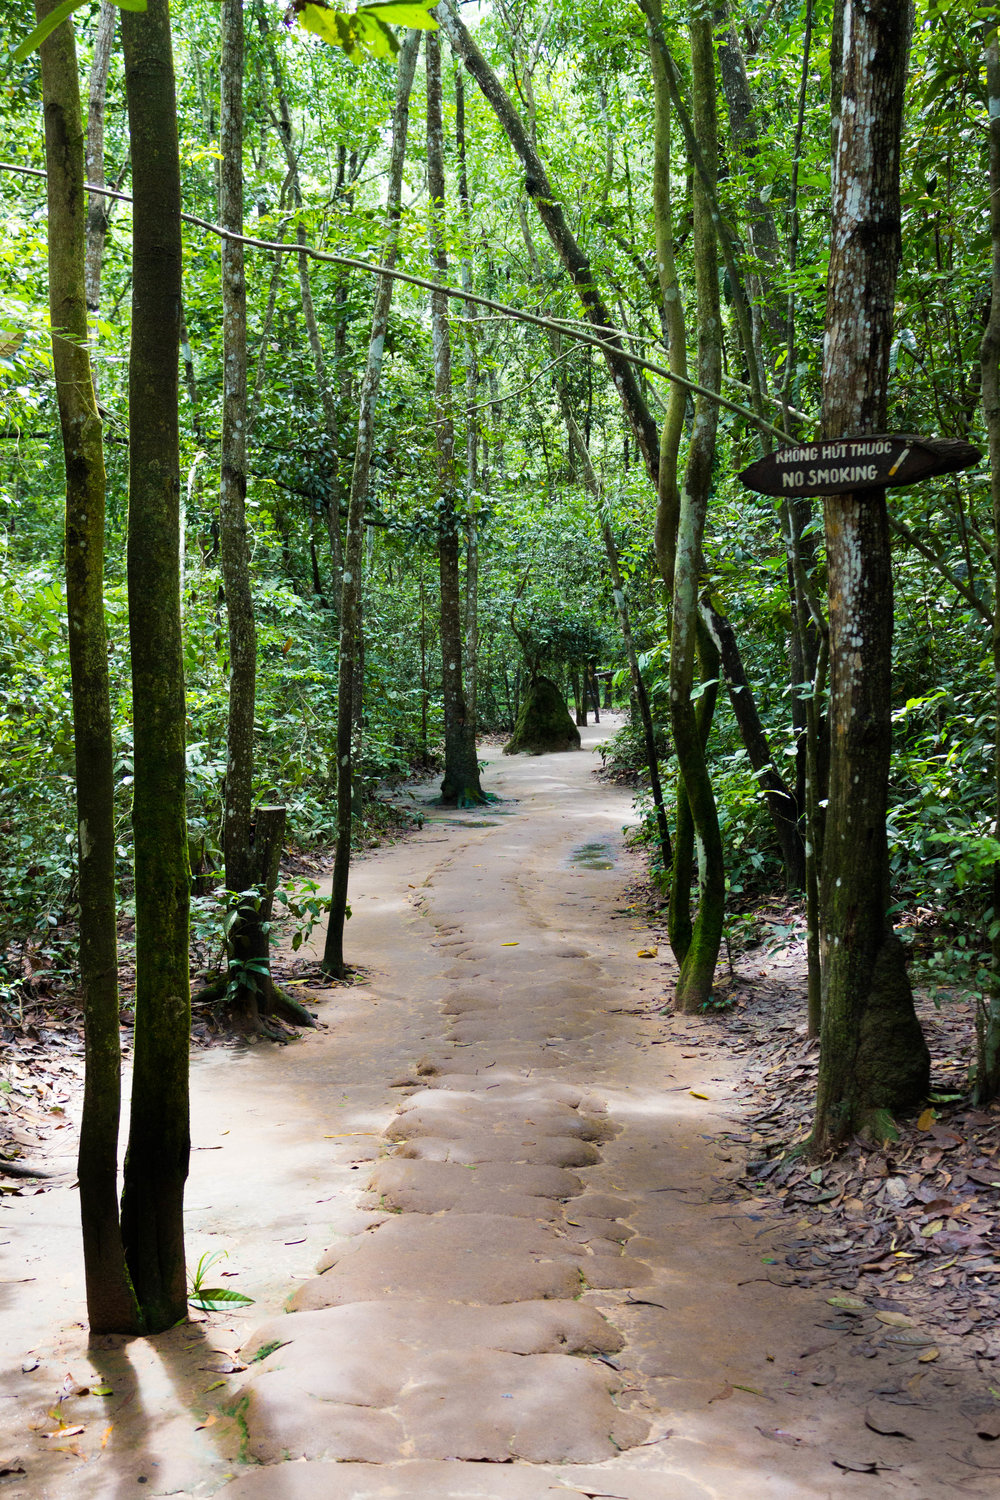 The lush forests of Cu Chi